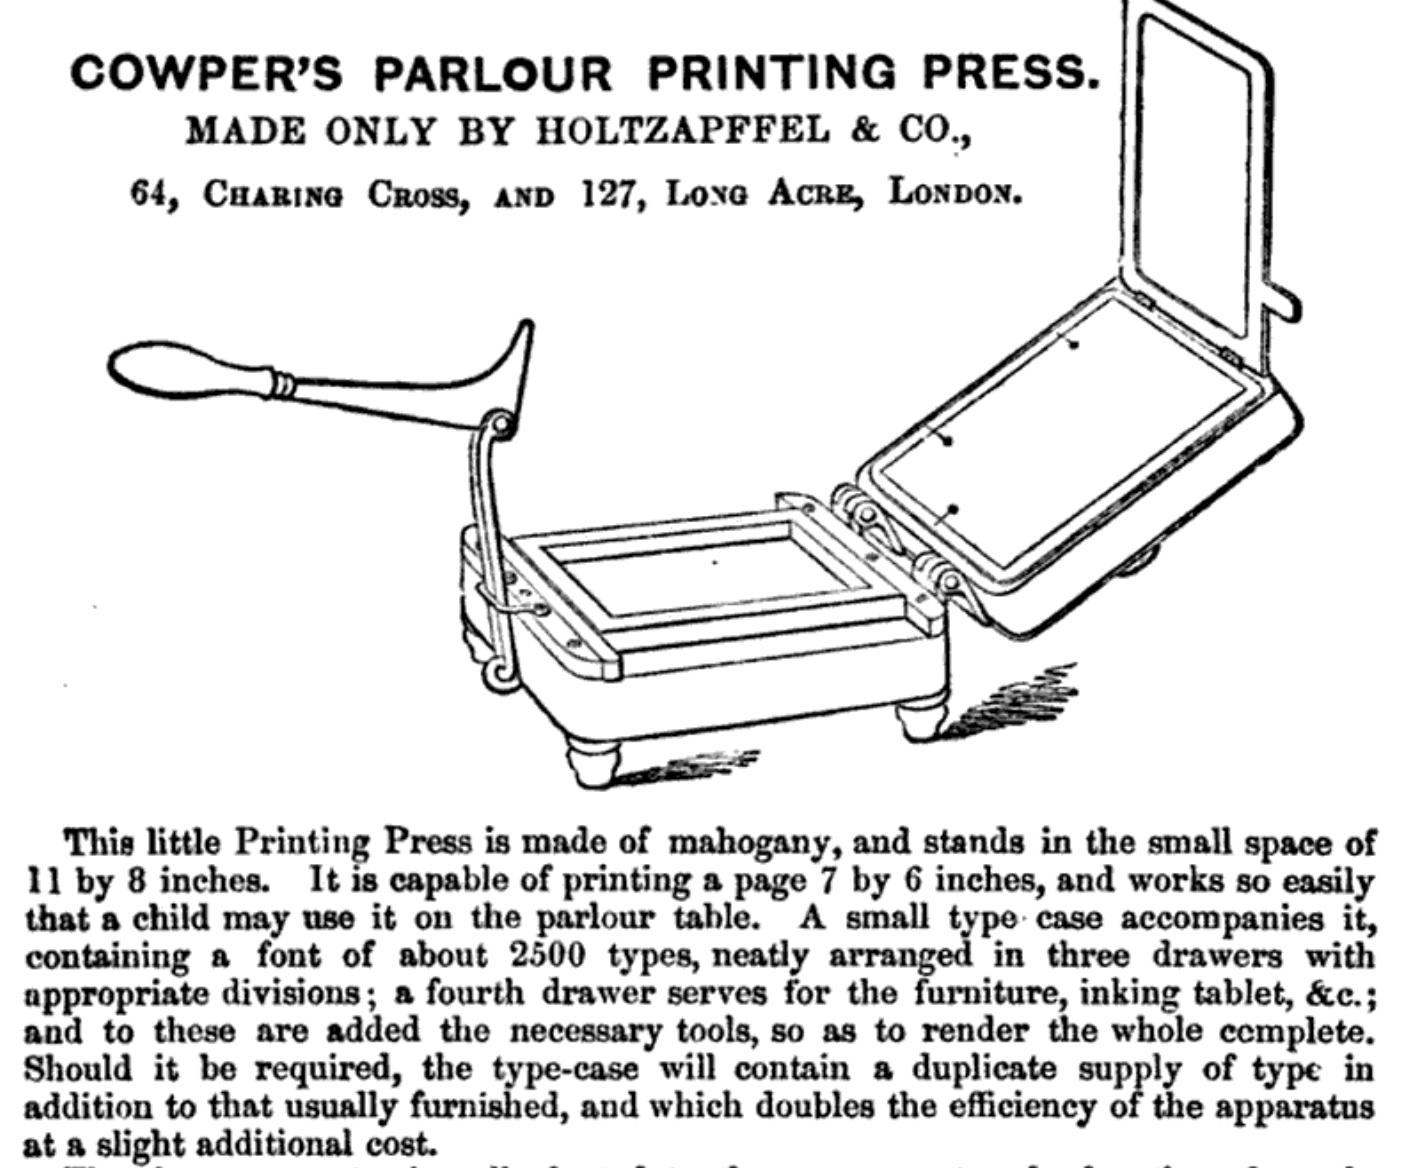 The Cowper's Parlour Printing Press, shown in an 1864 book, was intended for home use!